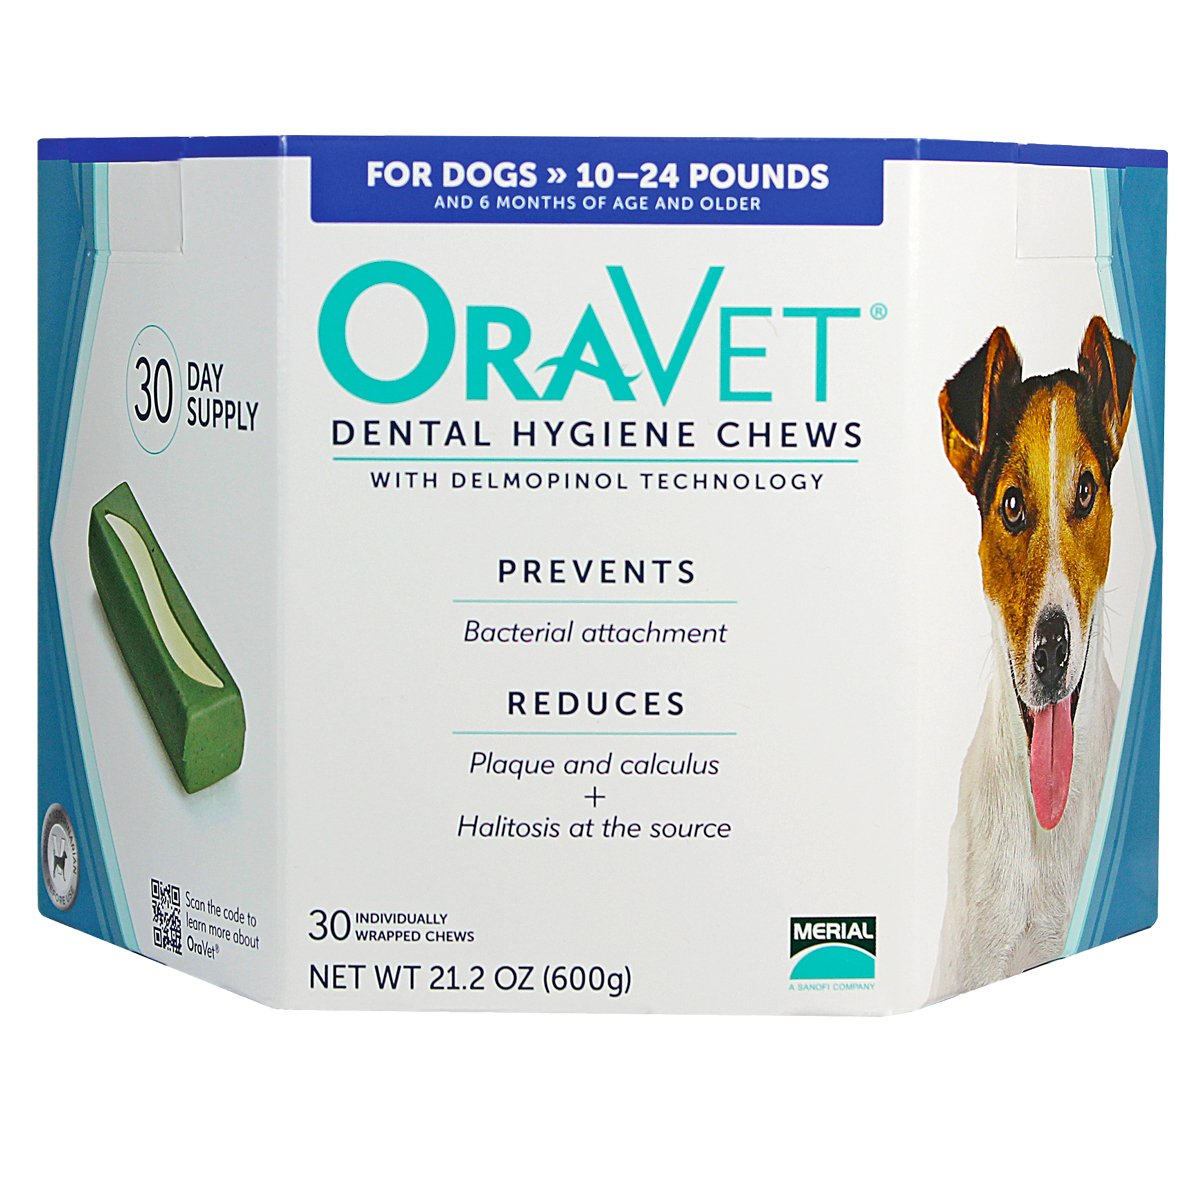 Oravet Dental Hygiene Chews, 10-24 lb, 30 ct, 3 pack + $8, off purchase with attached rebate form.